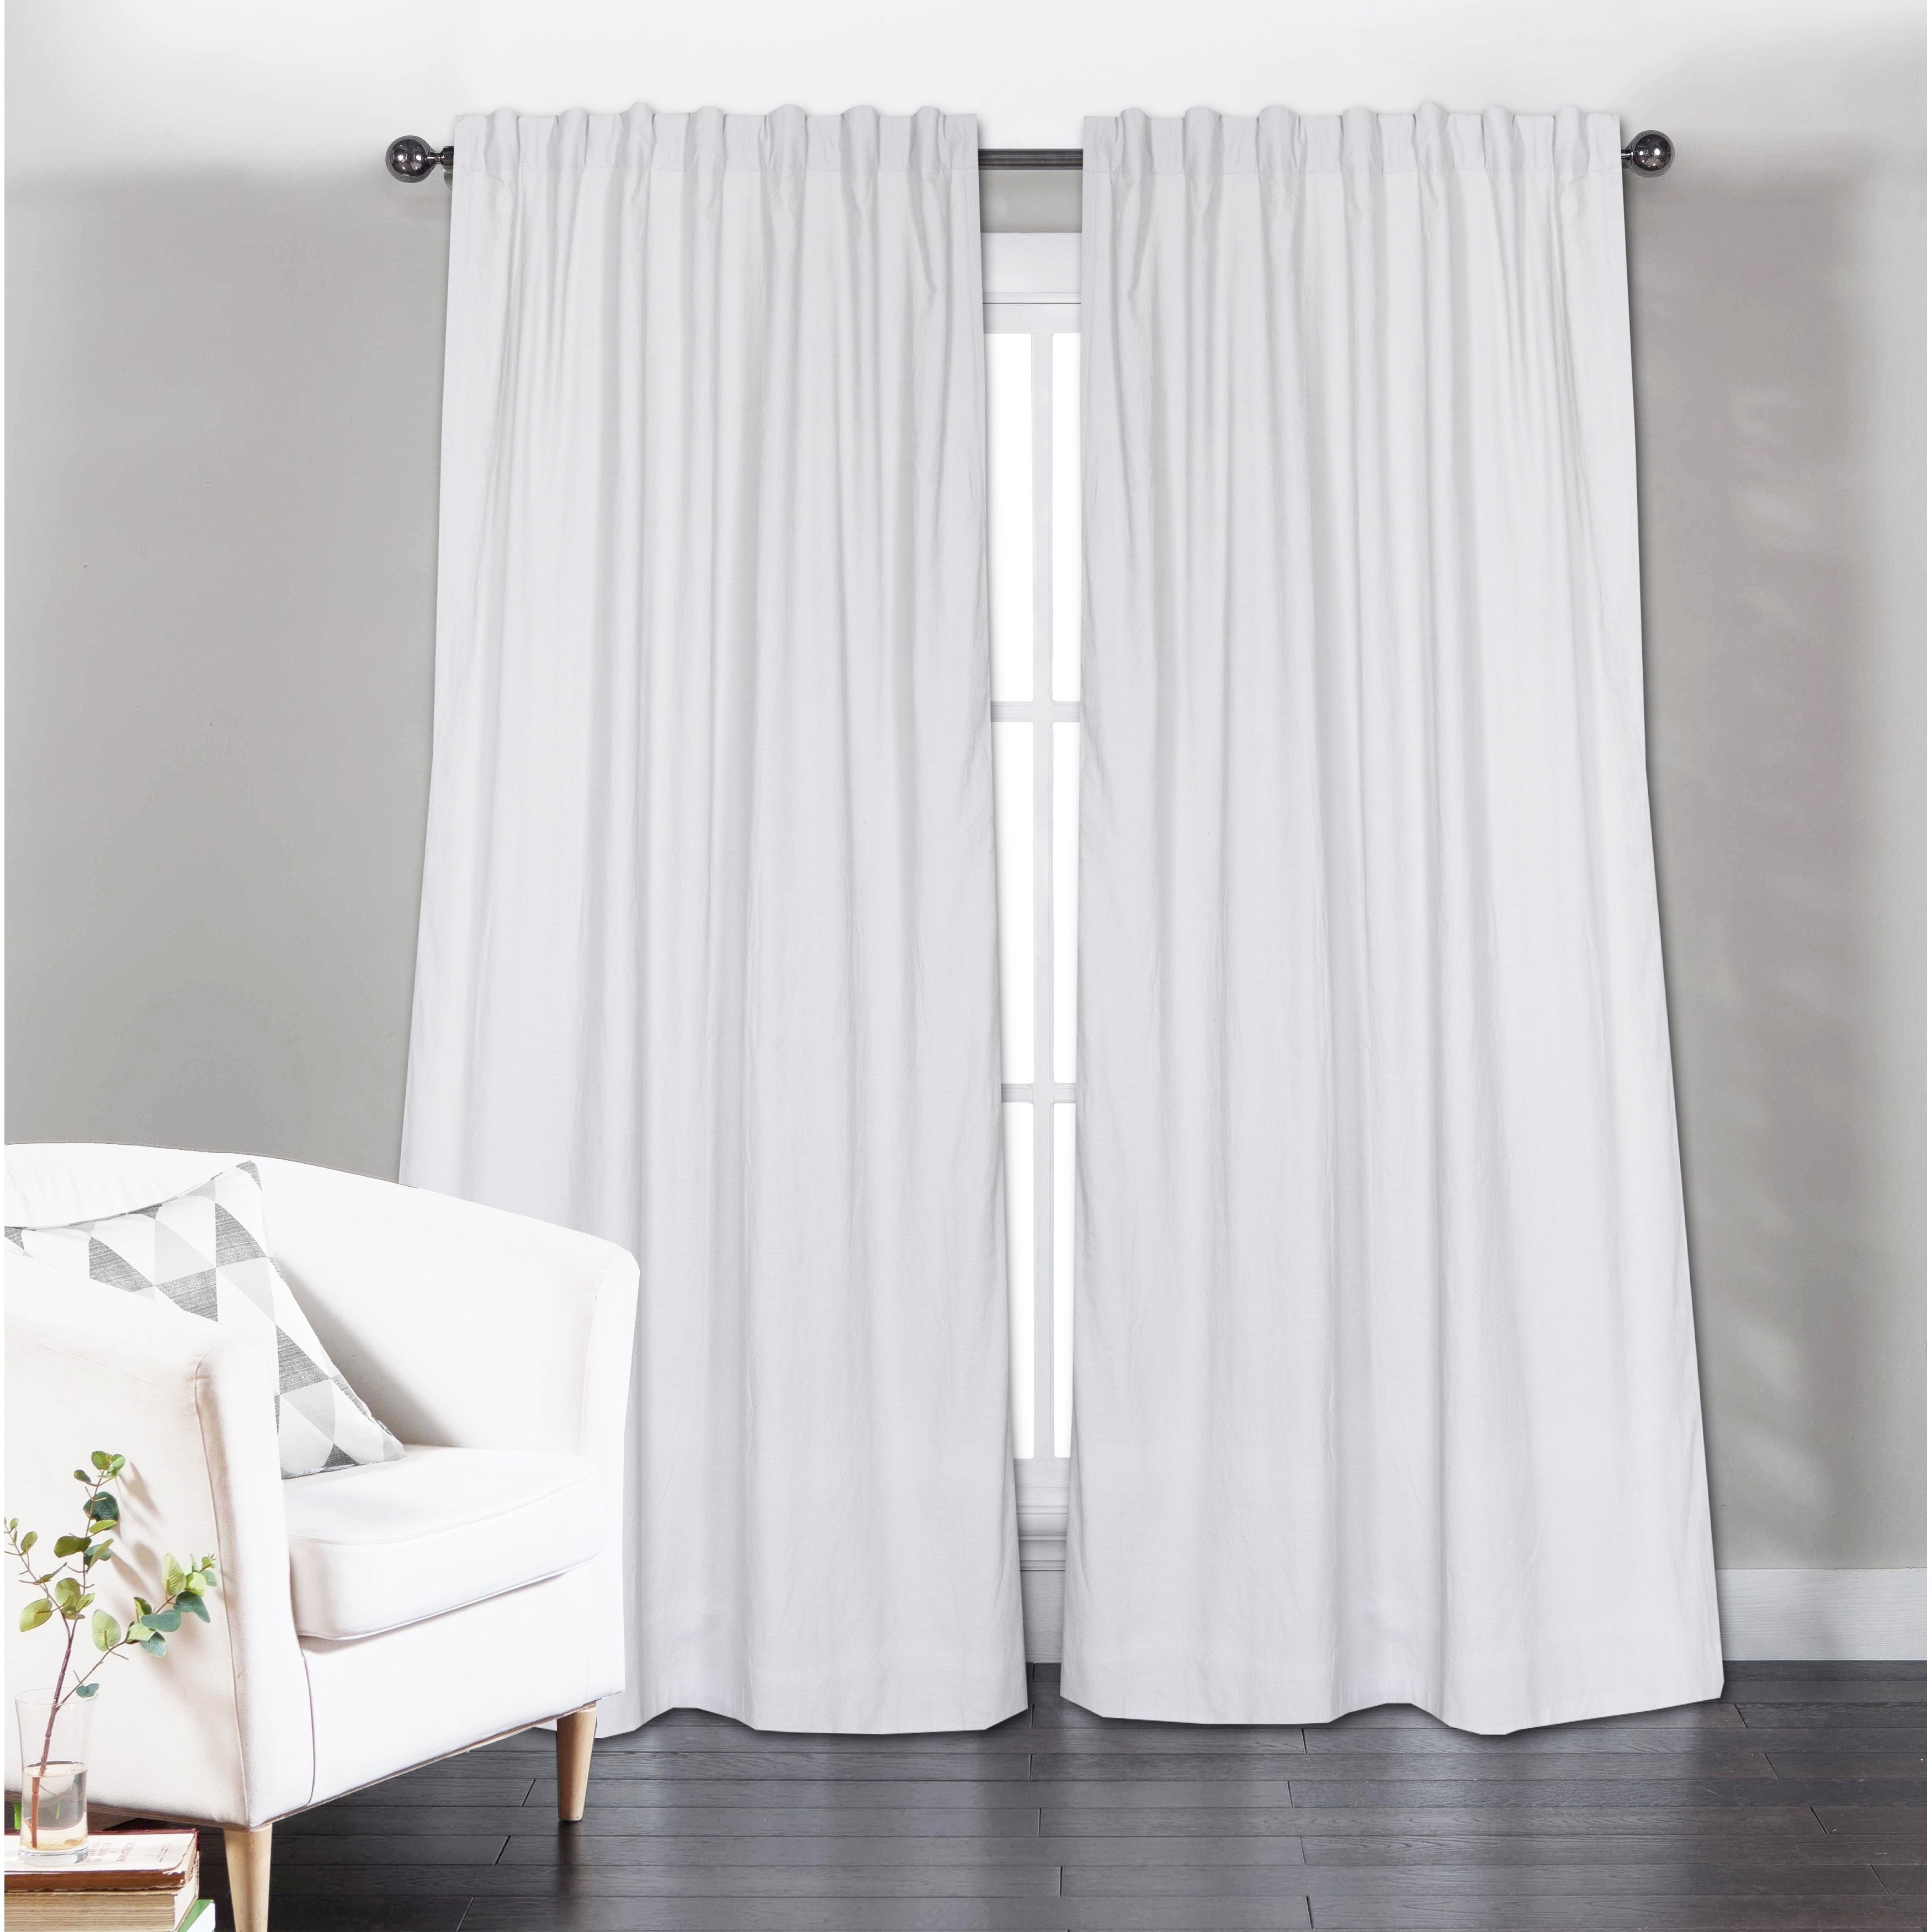 Long Solid Cotton Curtain Panel, White(Set Of 2) Throughout Solid Cotton Curtain Panels (View 24 of 30)